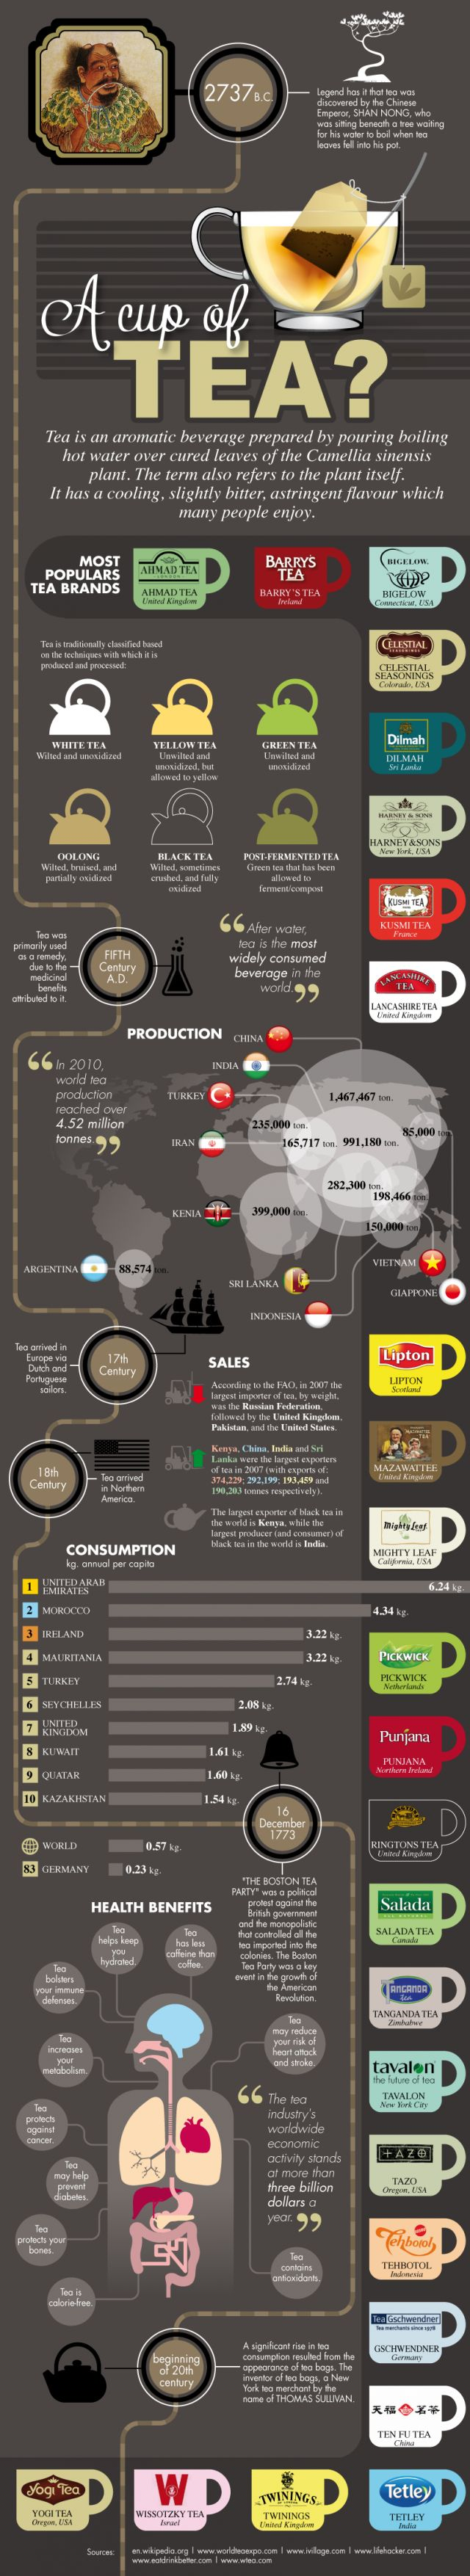 The Story of Tea [infographic]